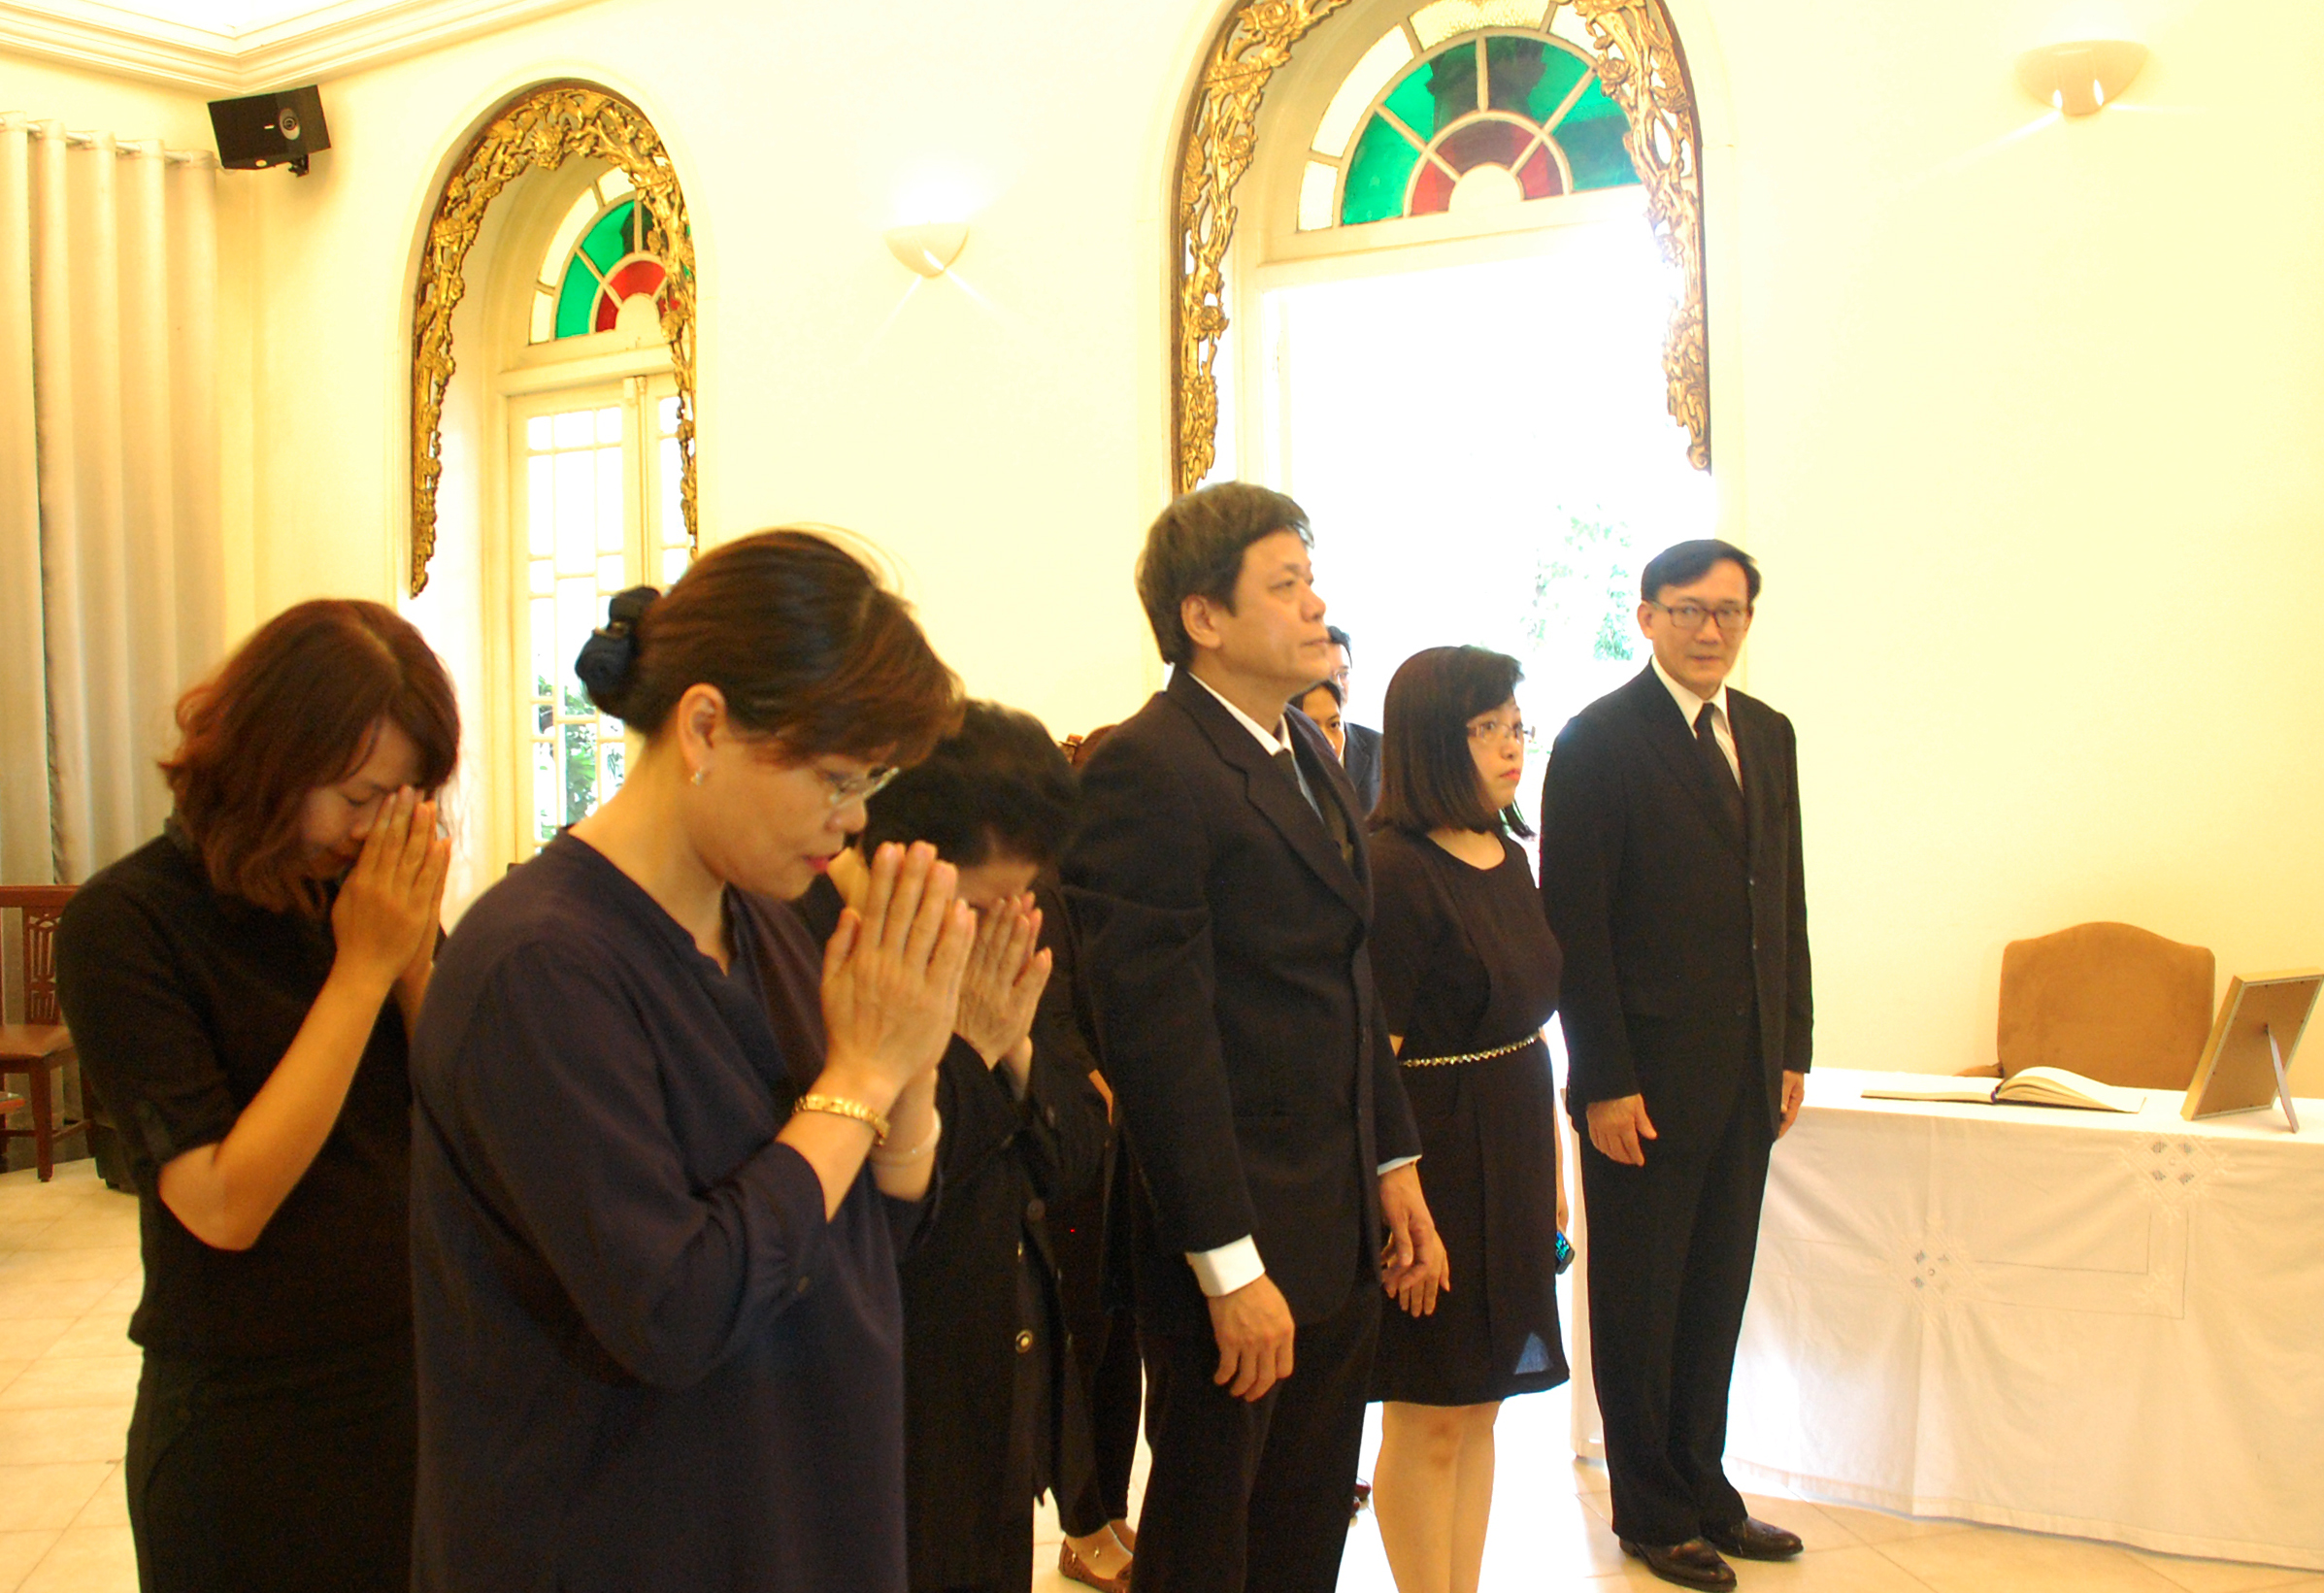 vov's leaders pay tribute to the thai king hinh 0